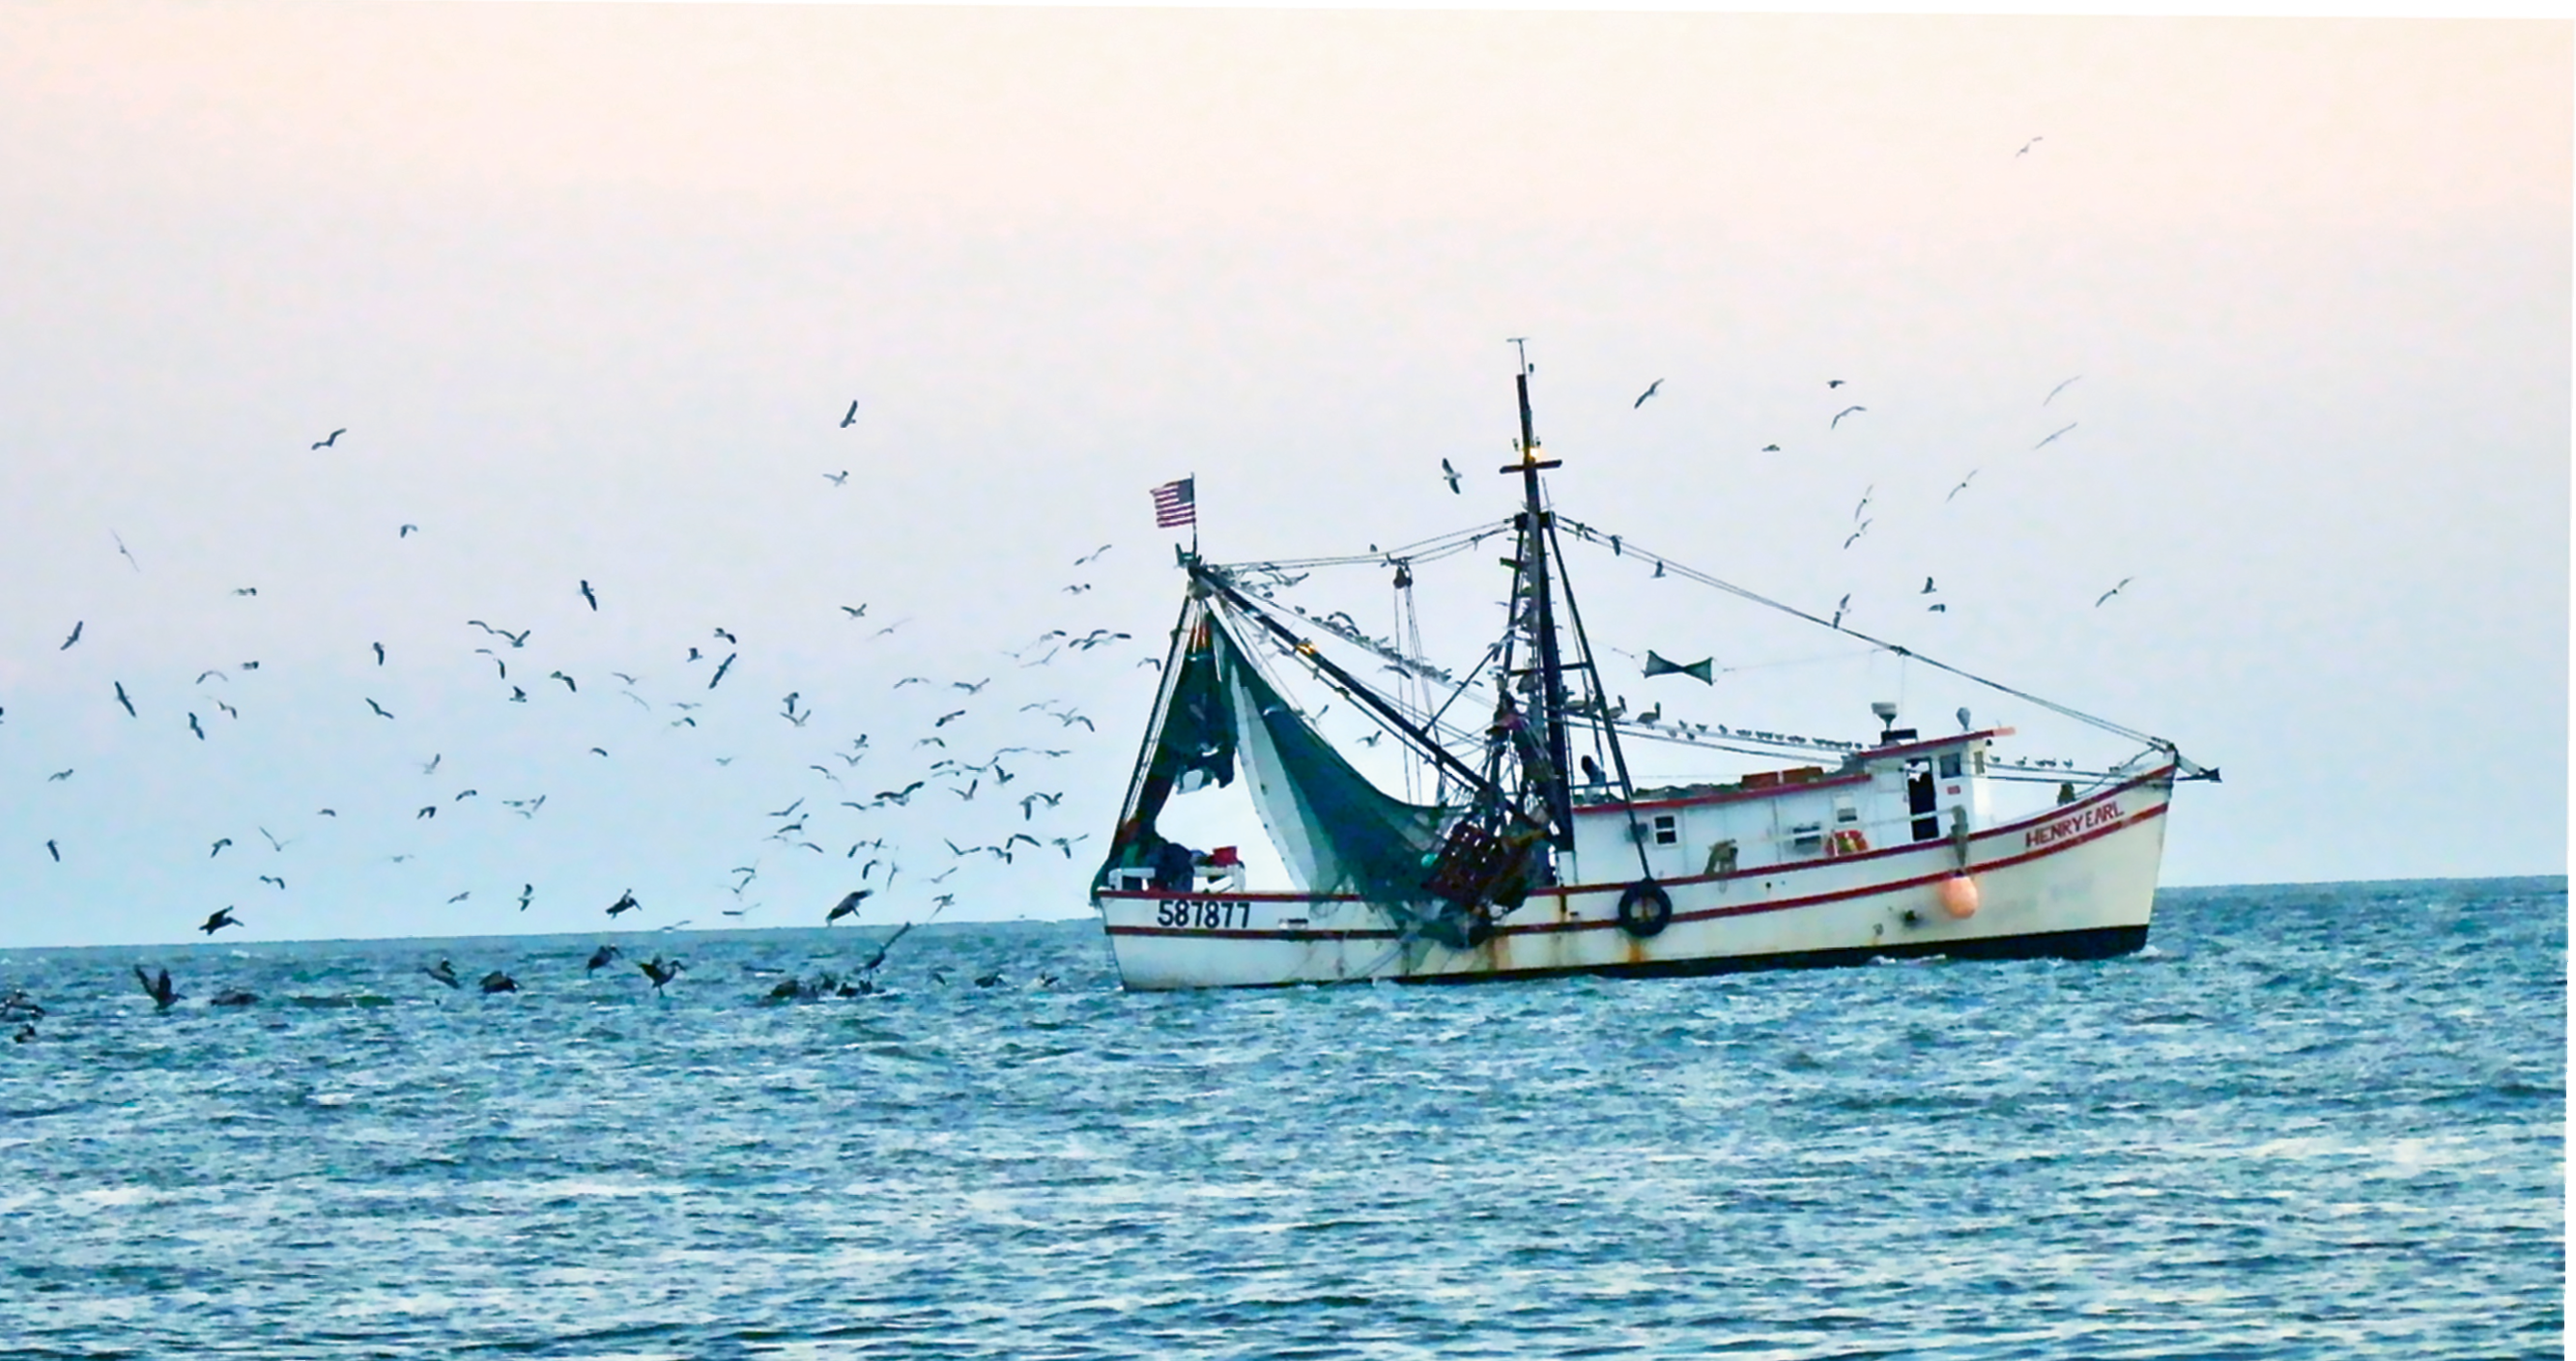 A Southern Living by Lisa Hartzog  {Amateur category} - A shrimp boat heads down the Edisto River with many feathered friends in pursuit.